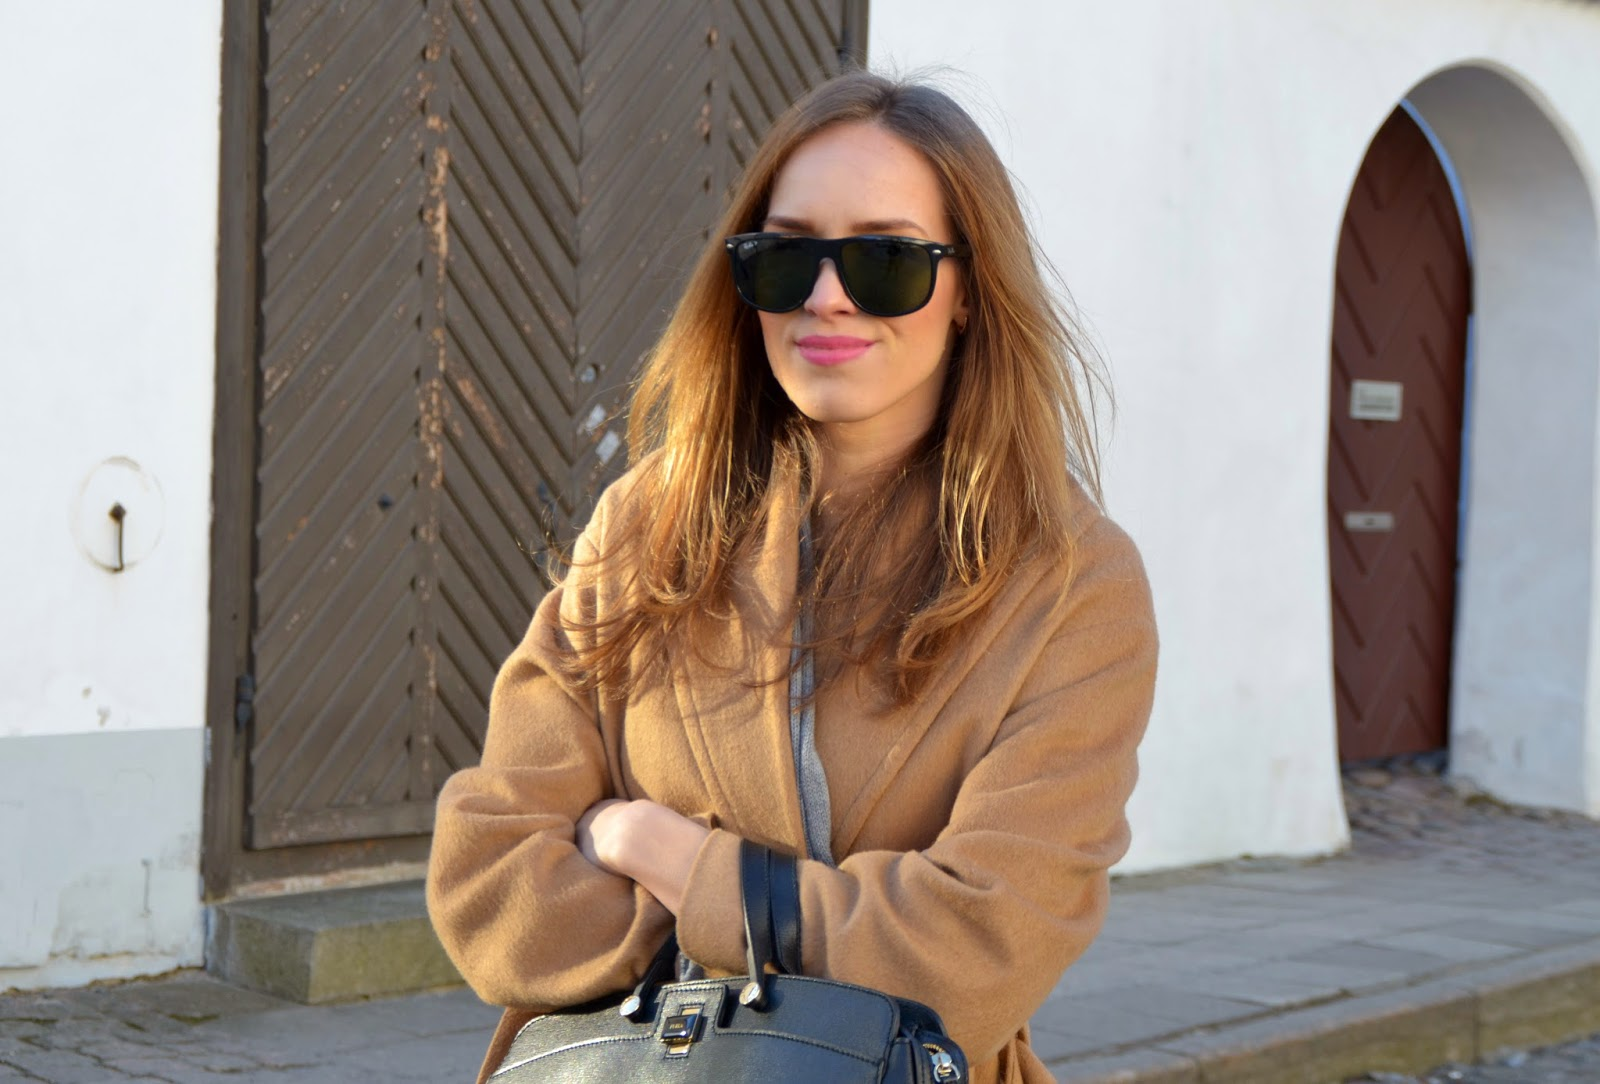 ray-ban-sunglasses-mango-coat-fashion-street-style-winter-outfit kristjaana mere